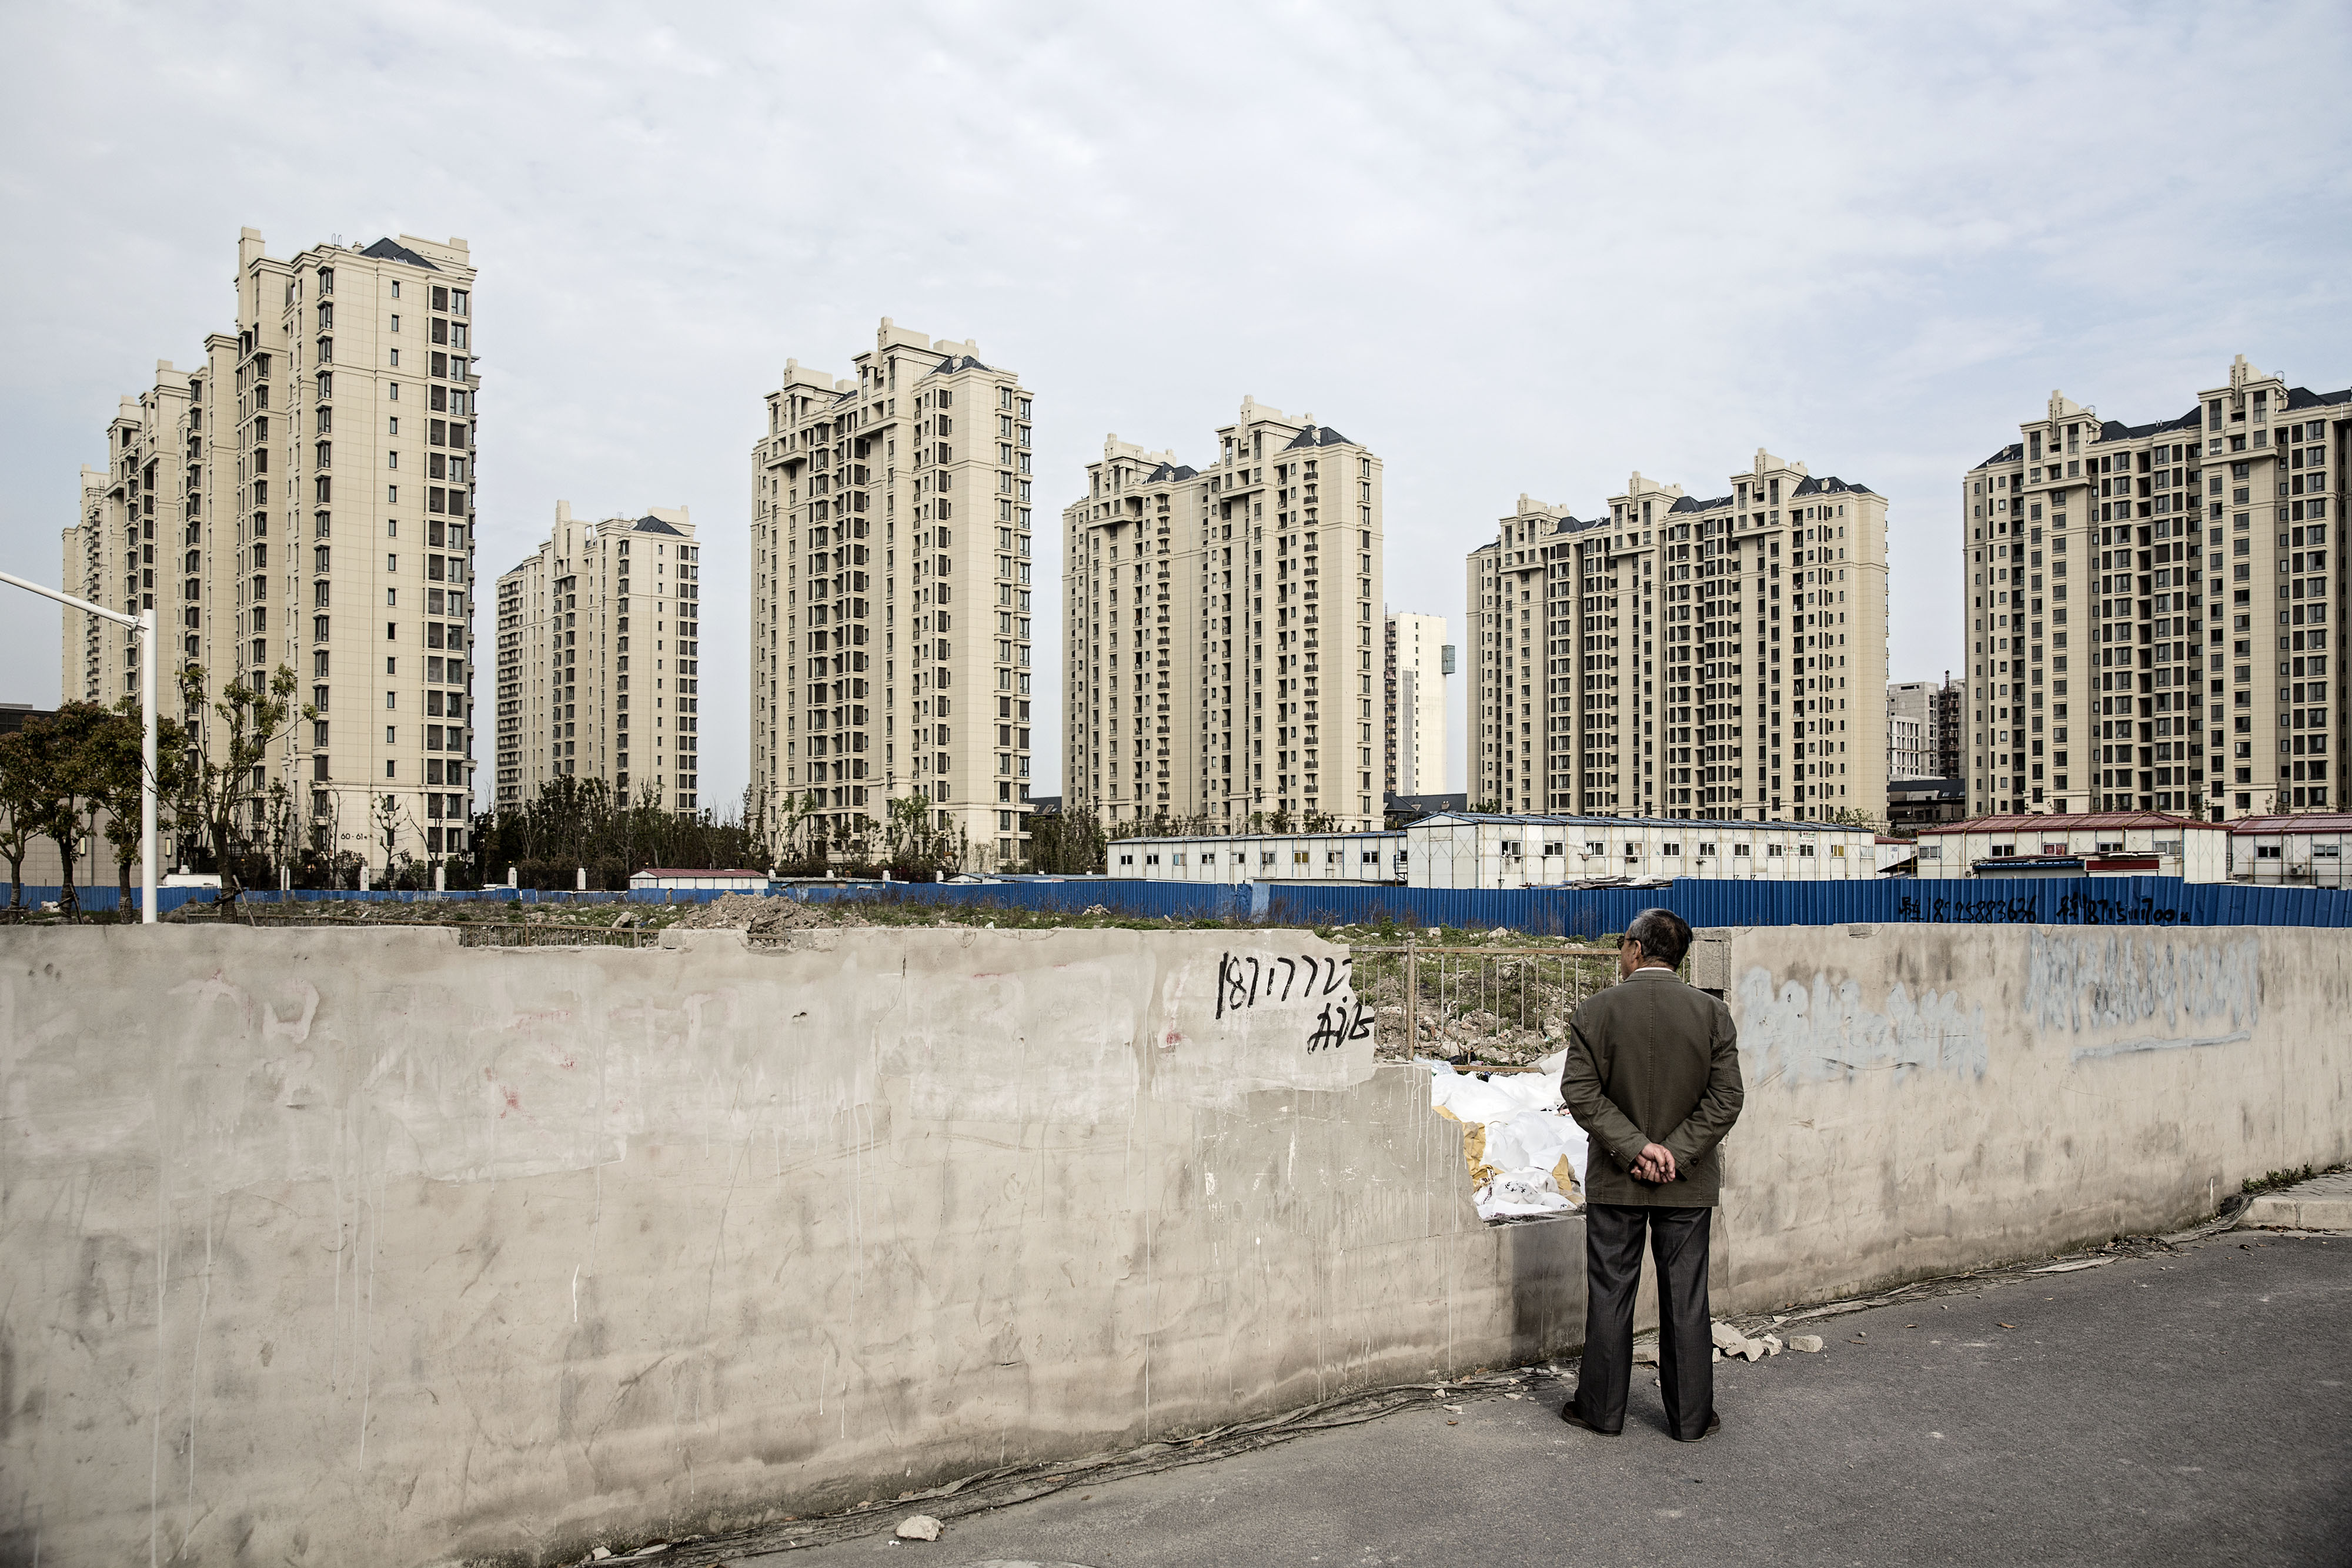 Residential buildings in the Jiading district of Shanghai (credit: Getty images)